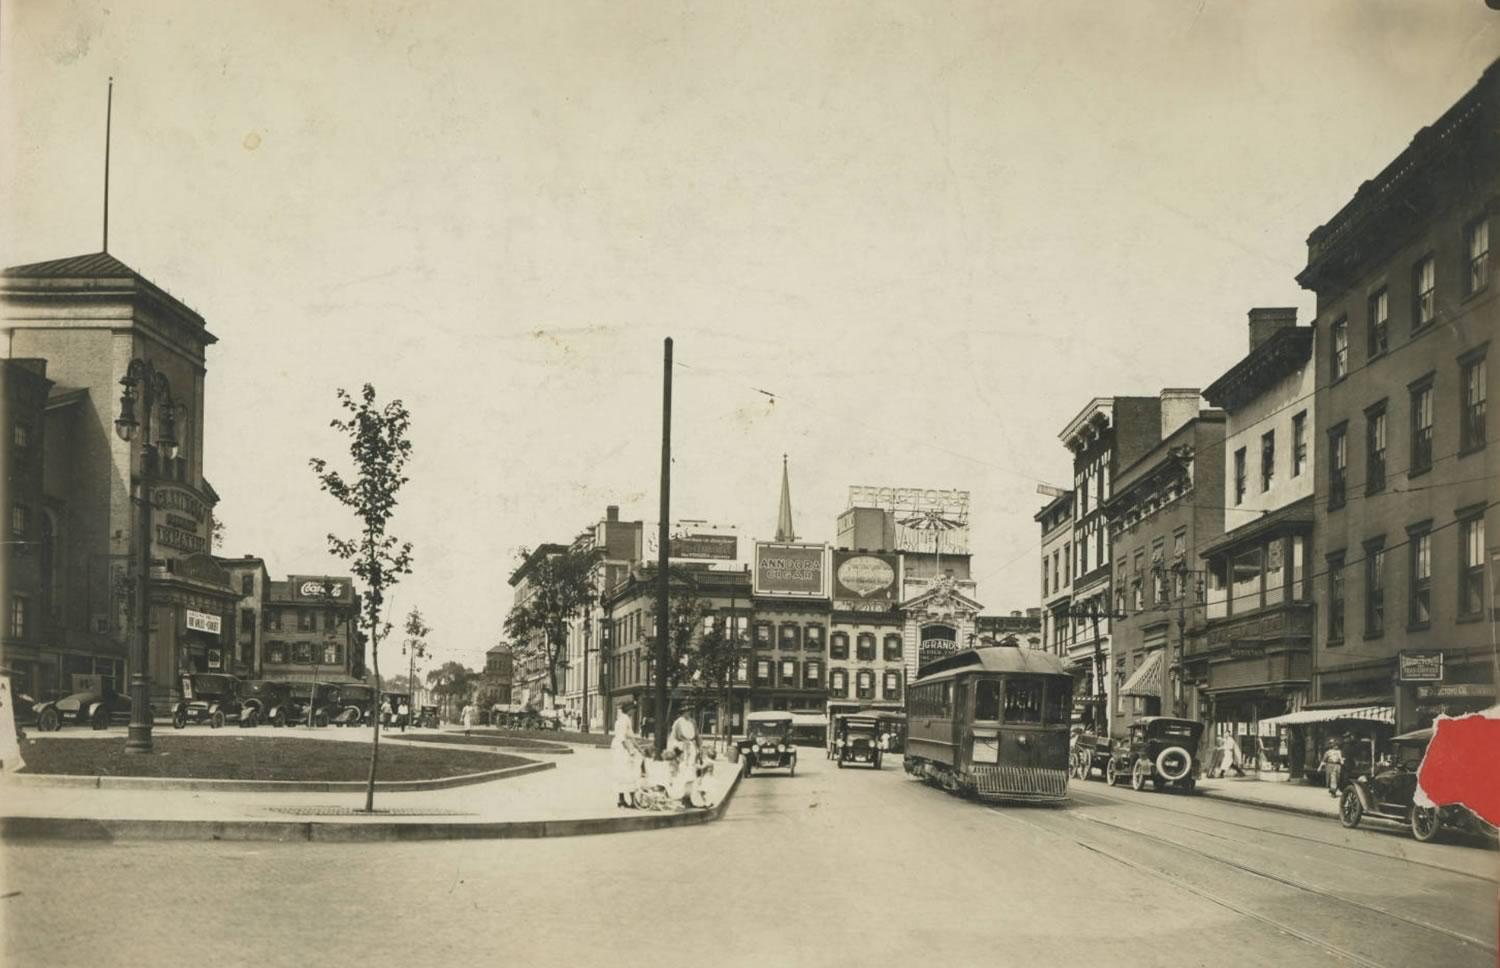 Clinton Square Albany 1920s Albany Public Library History Collection